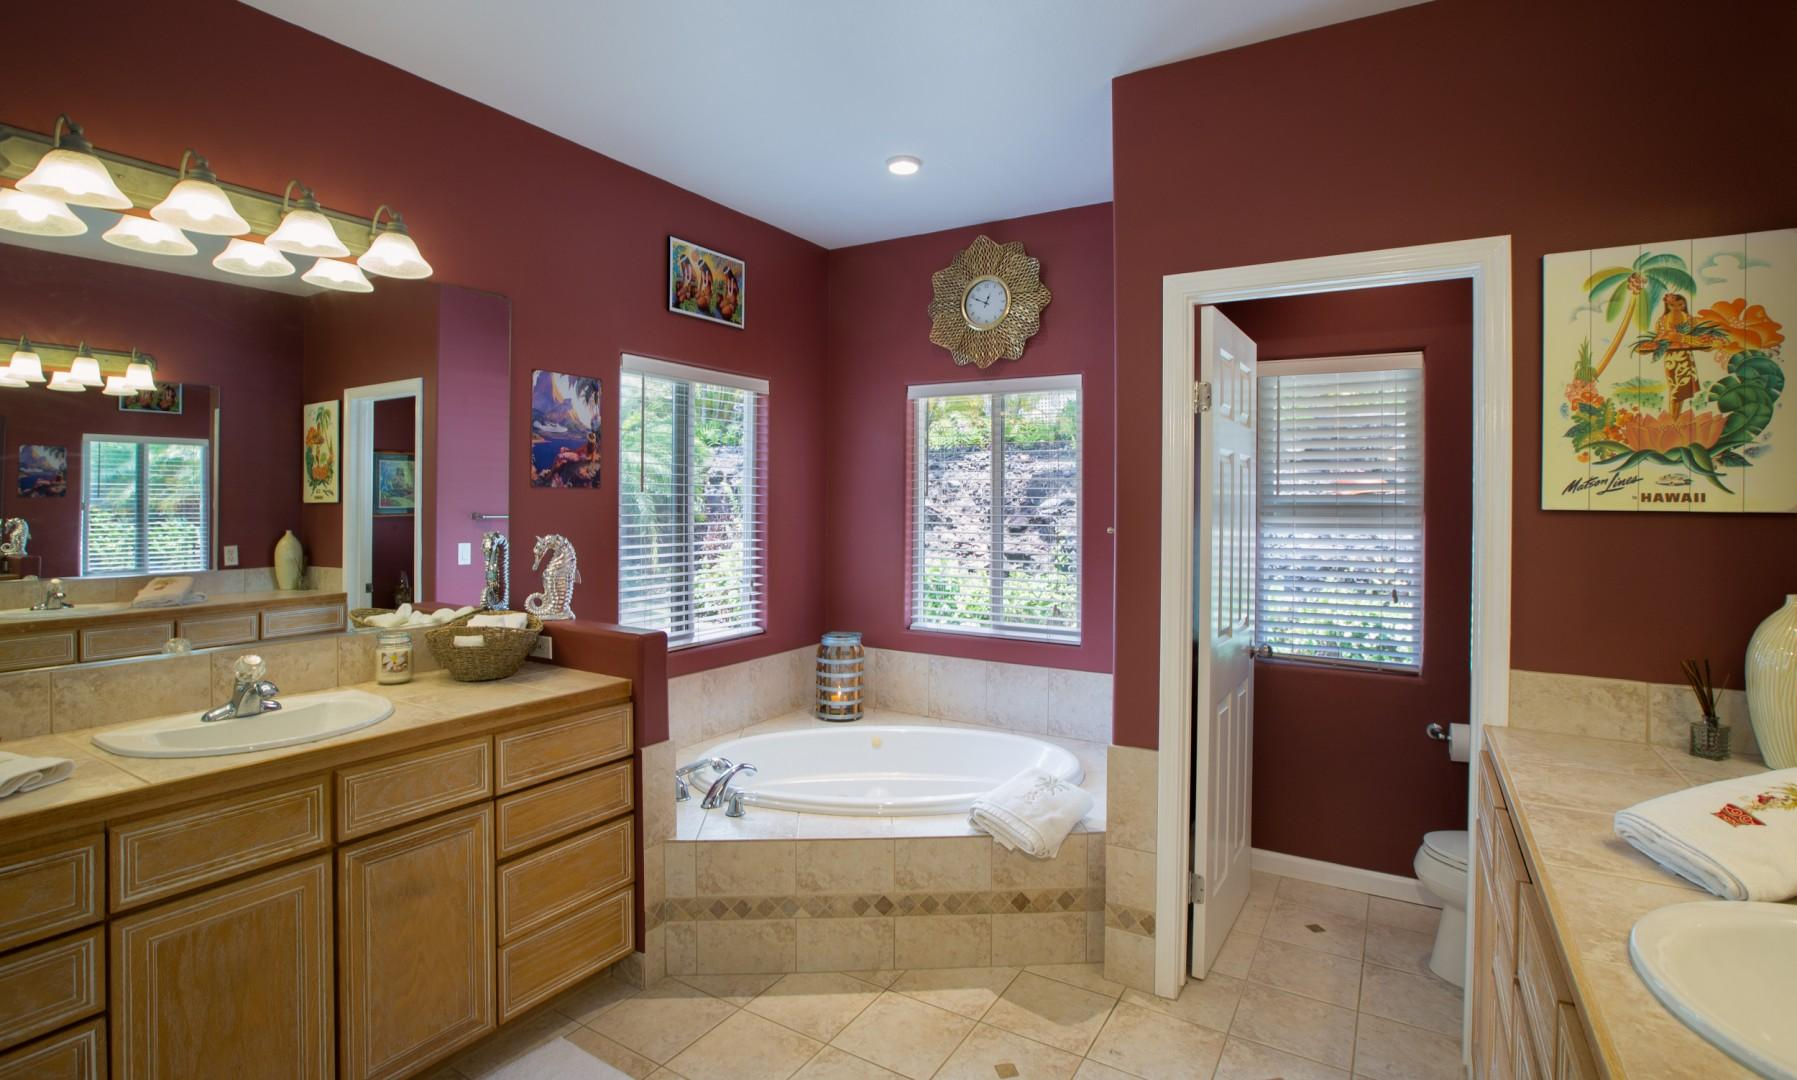 Master en suite with dual sinks, large walk-in shower, and jacuzzi tub.